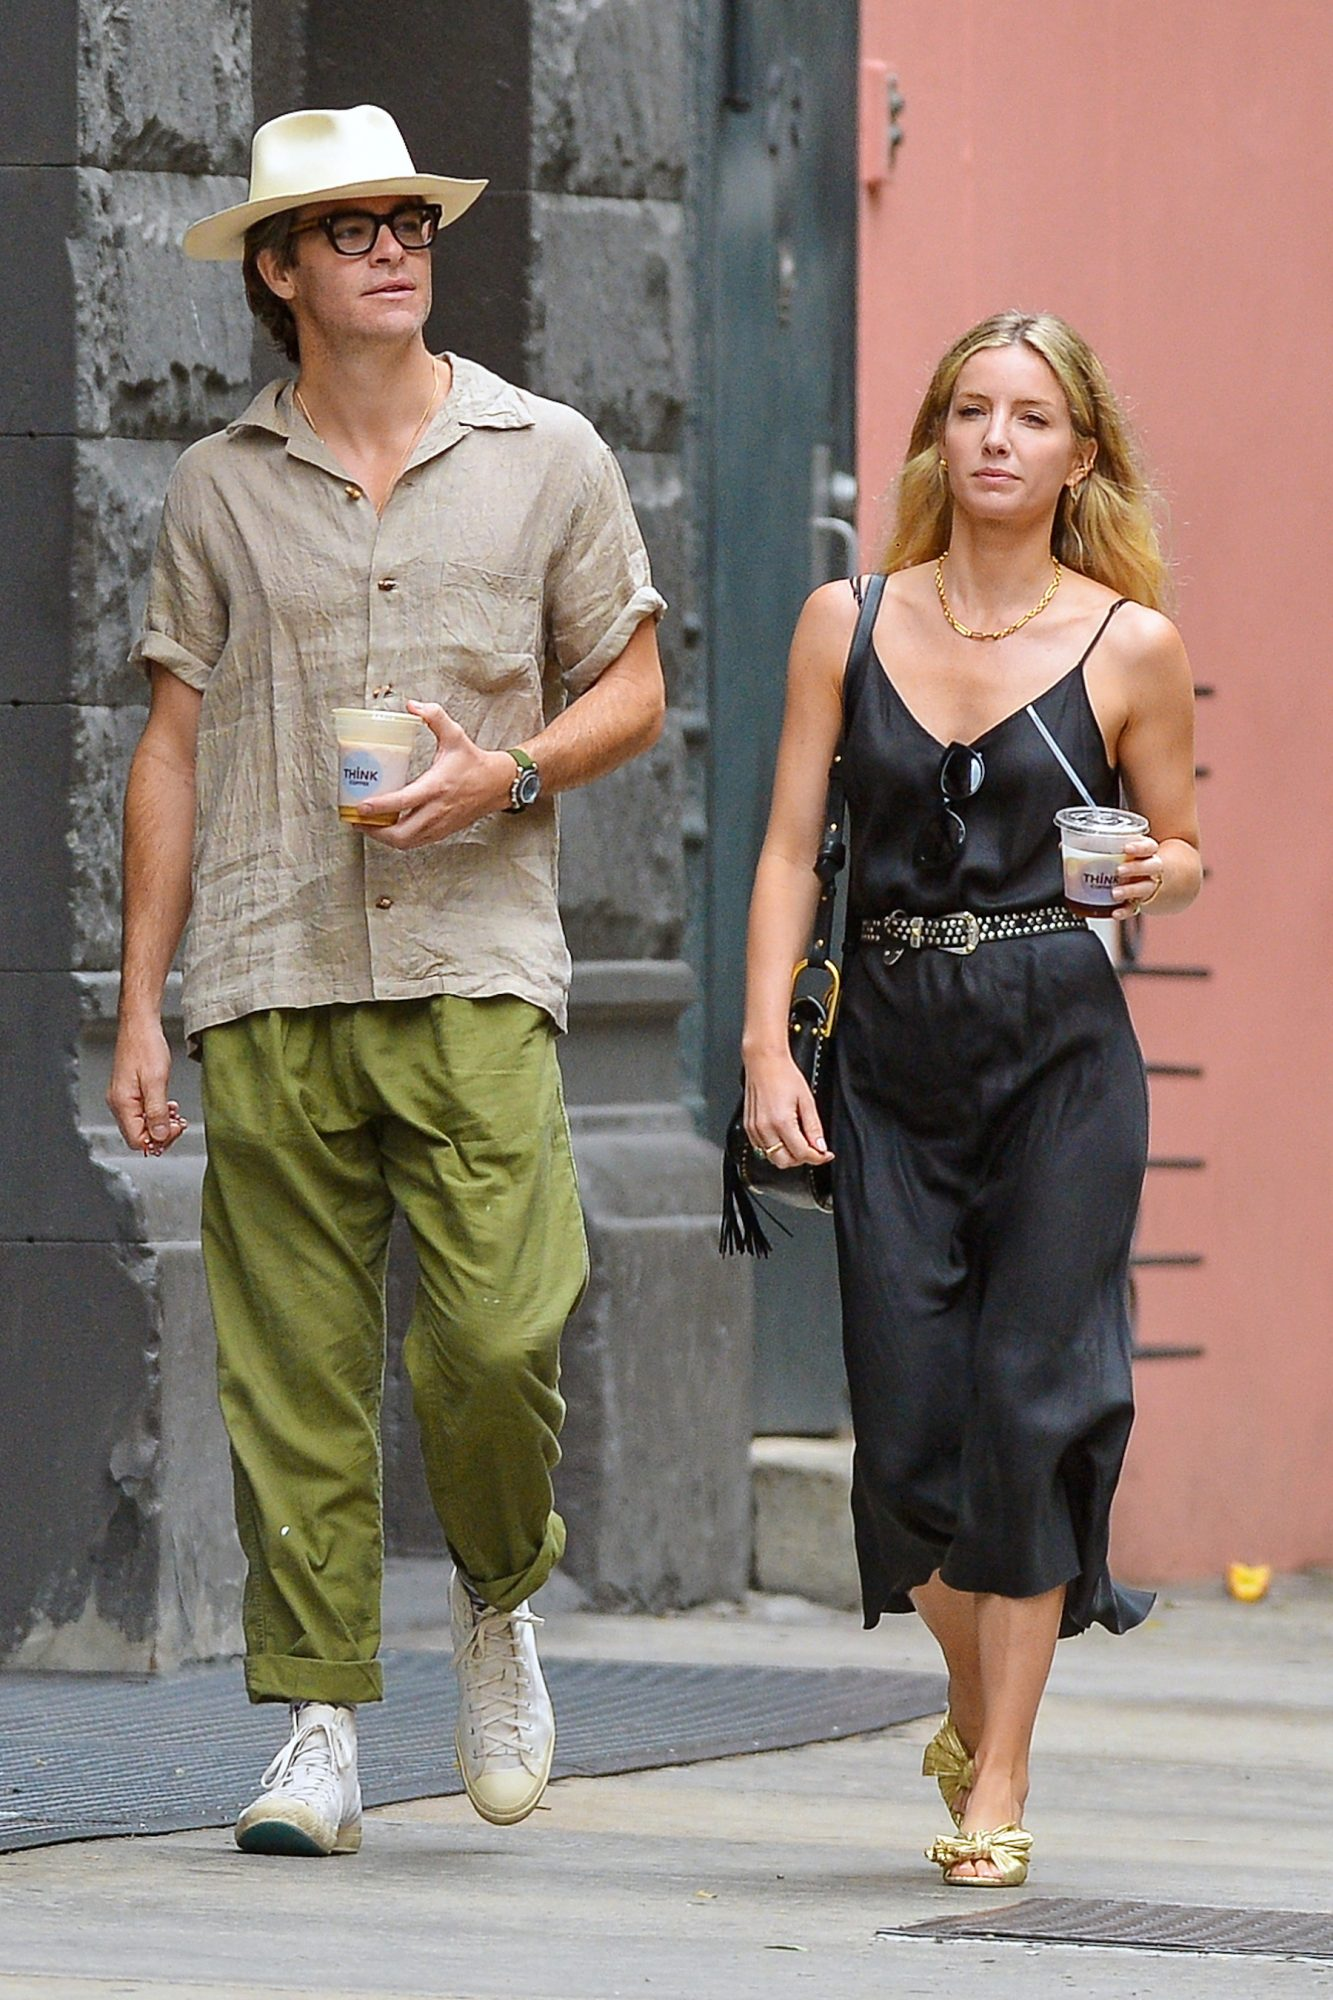 EXCLUSIVE: Chris Pine and Annabelle Wallis Enjoy some Iced Coffees on a Hot and Humid day in New York City.